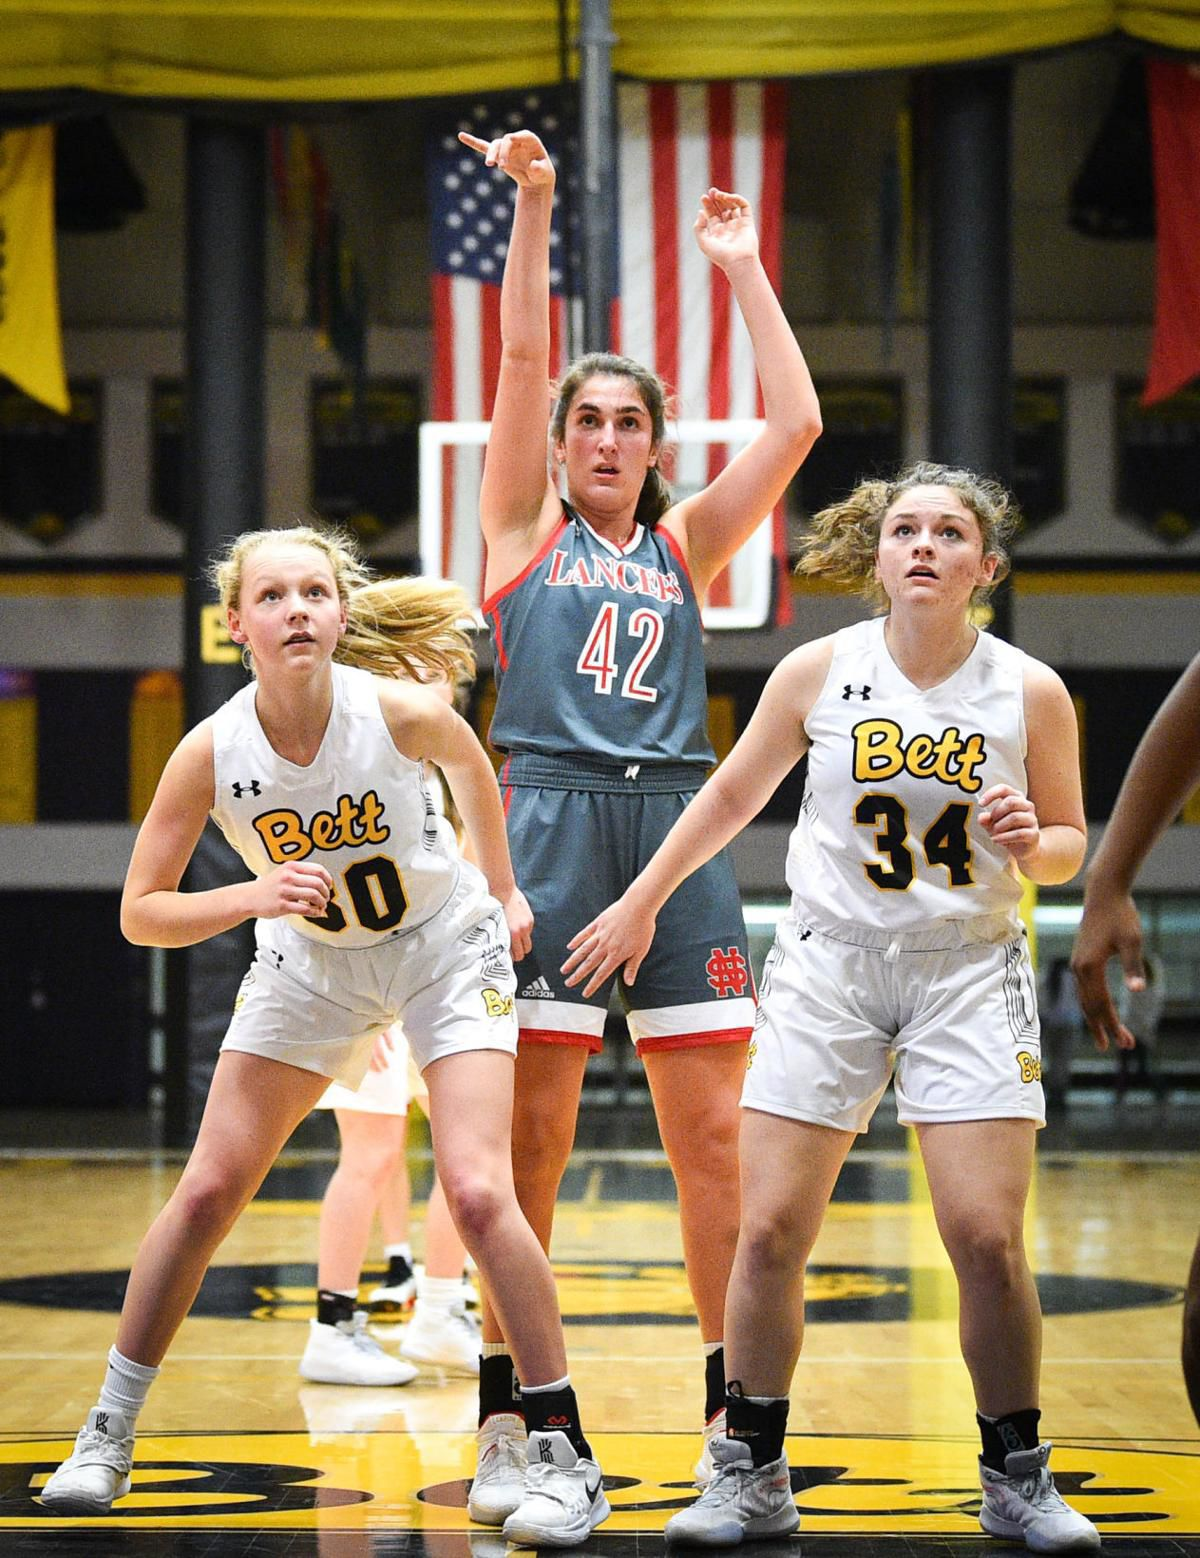 Iowa women's basketball freshman Caitlin Clark not intimidated by high expectations 1